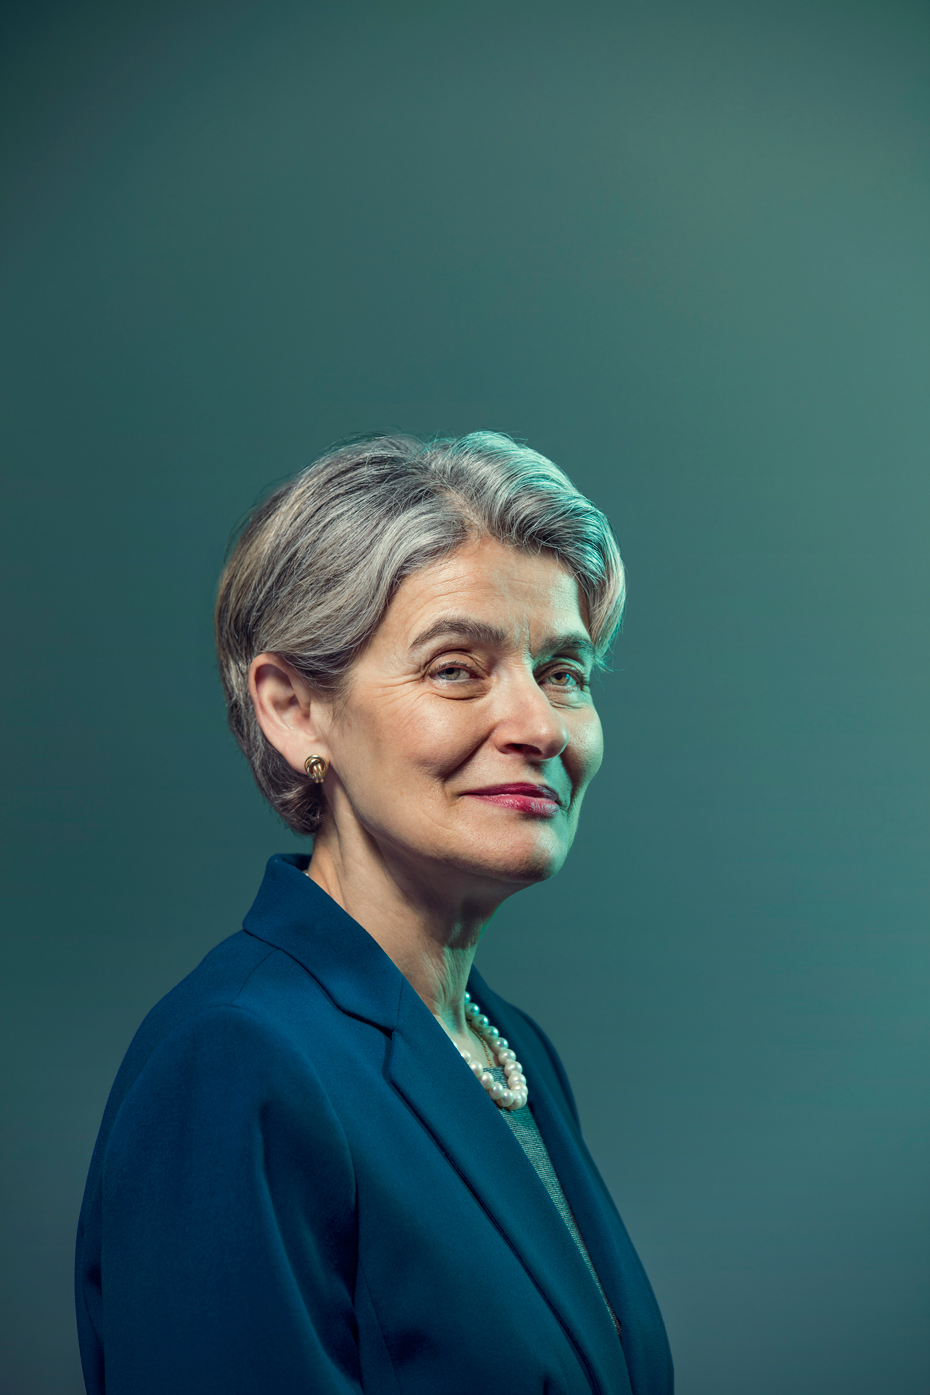 For The Guardian Weekend Magazine - UNESCO Director-General Irina Bokova